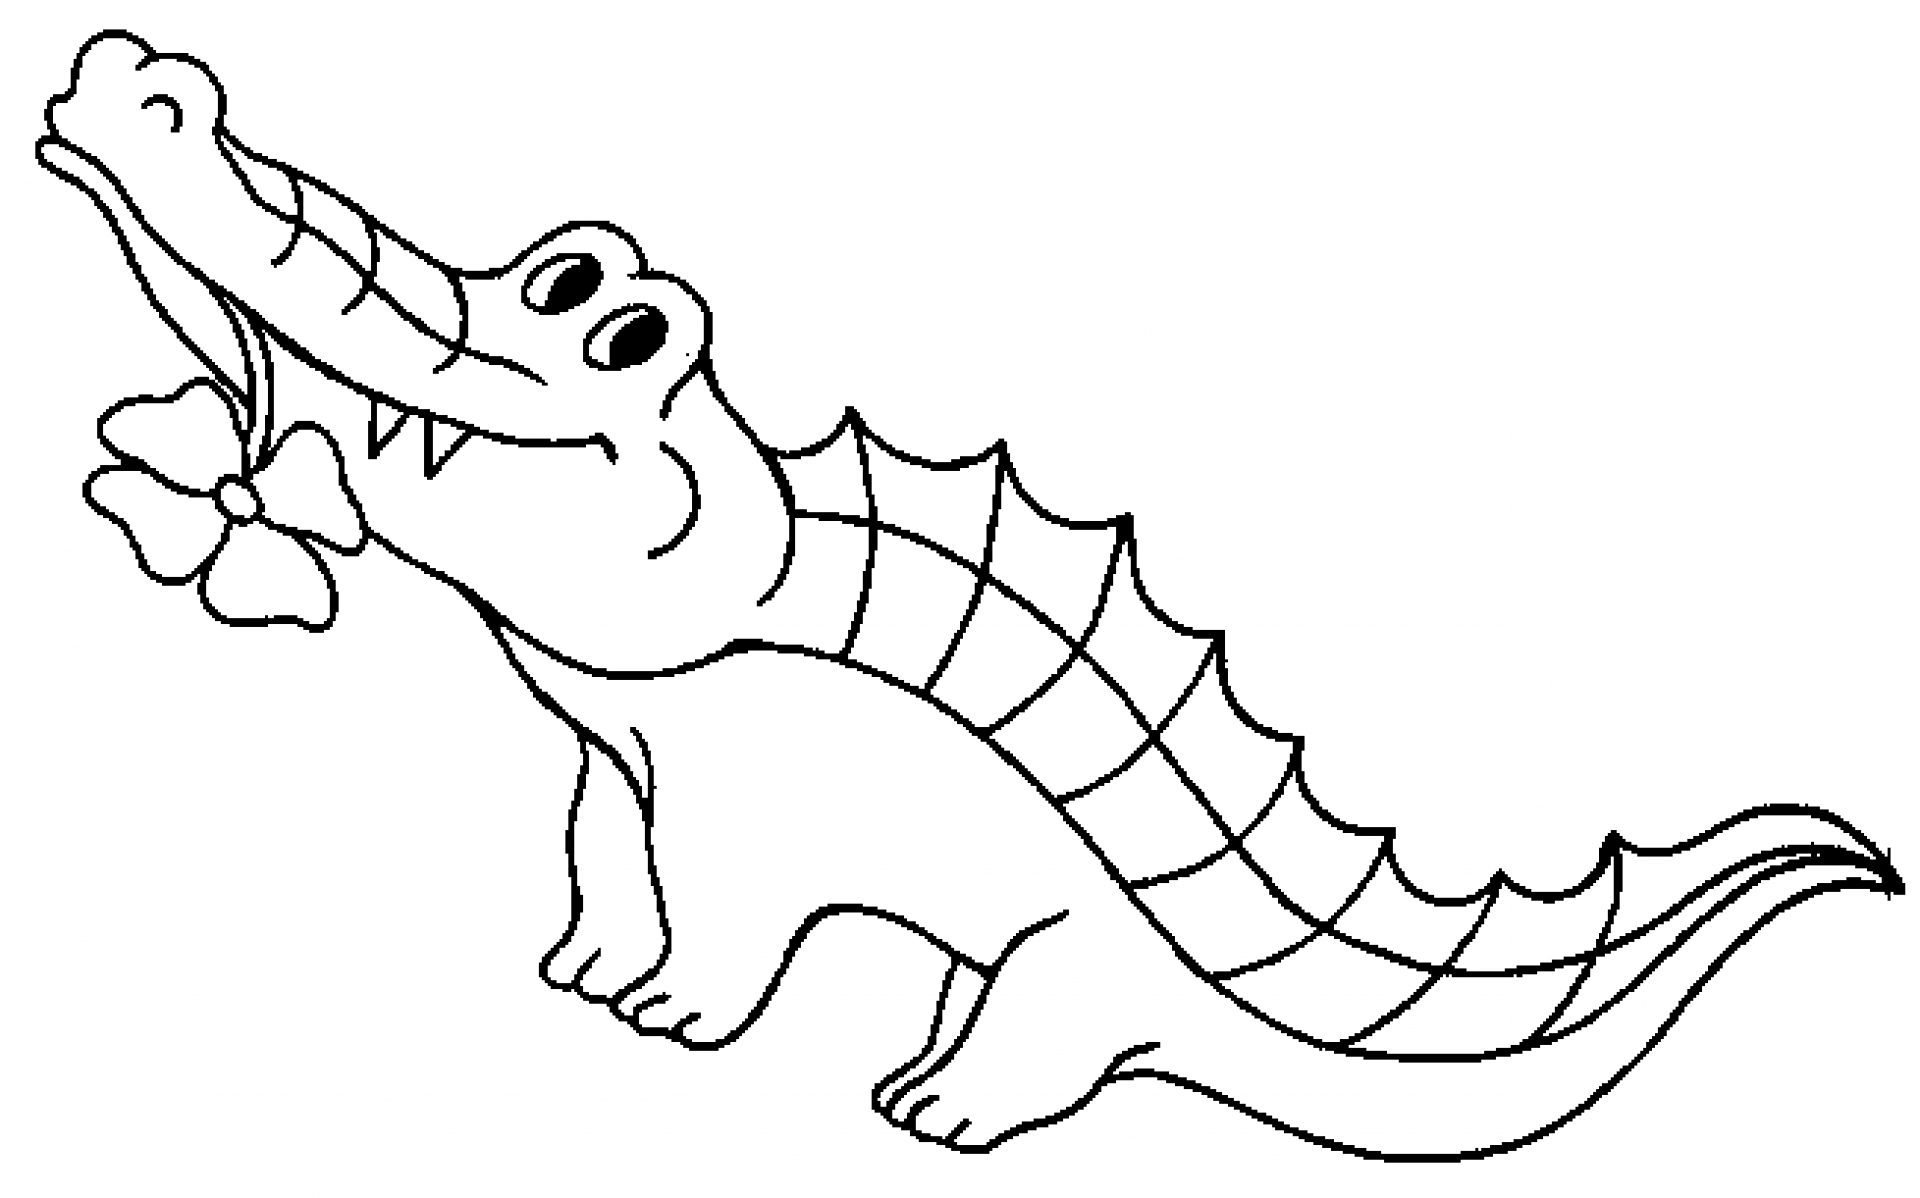 Alligator  black and white alligator black and white clipart 2